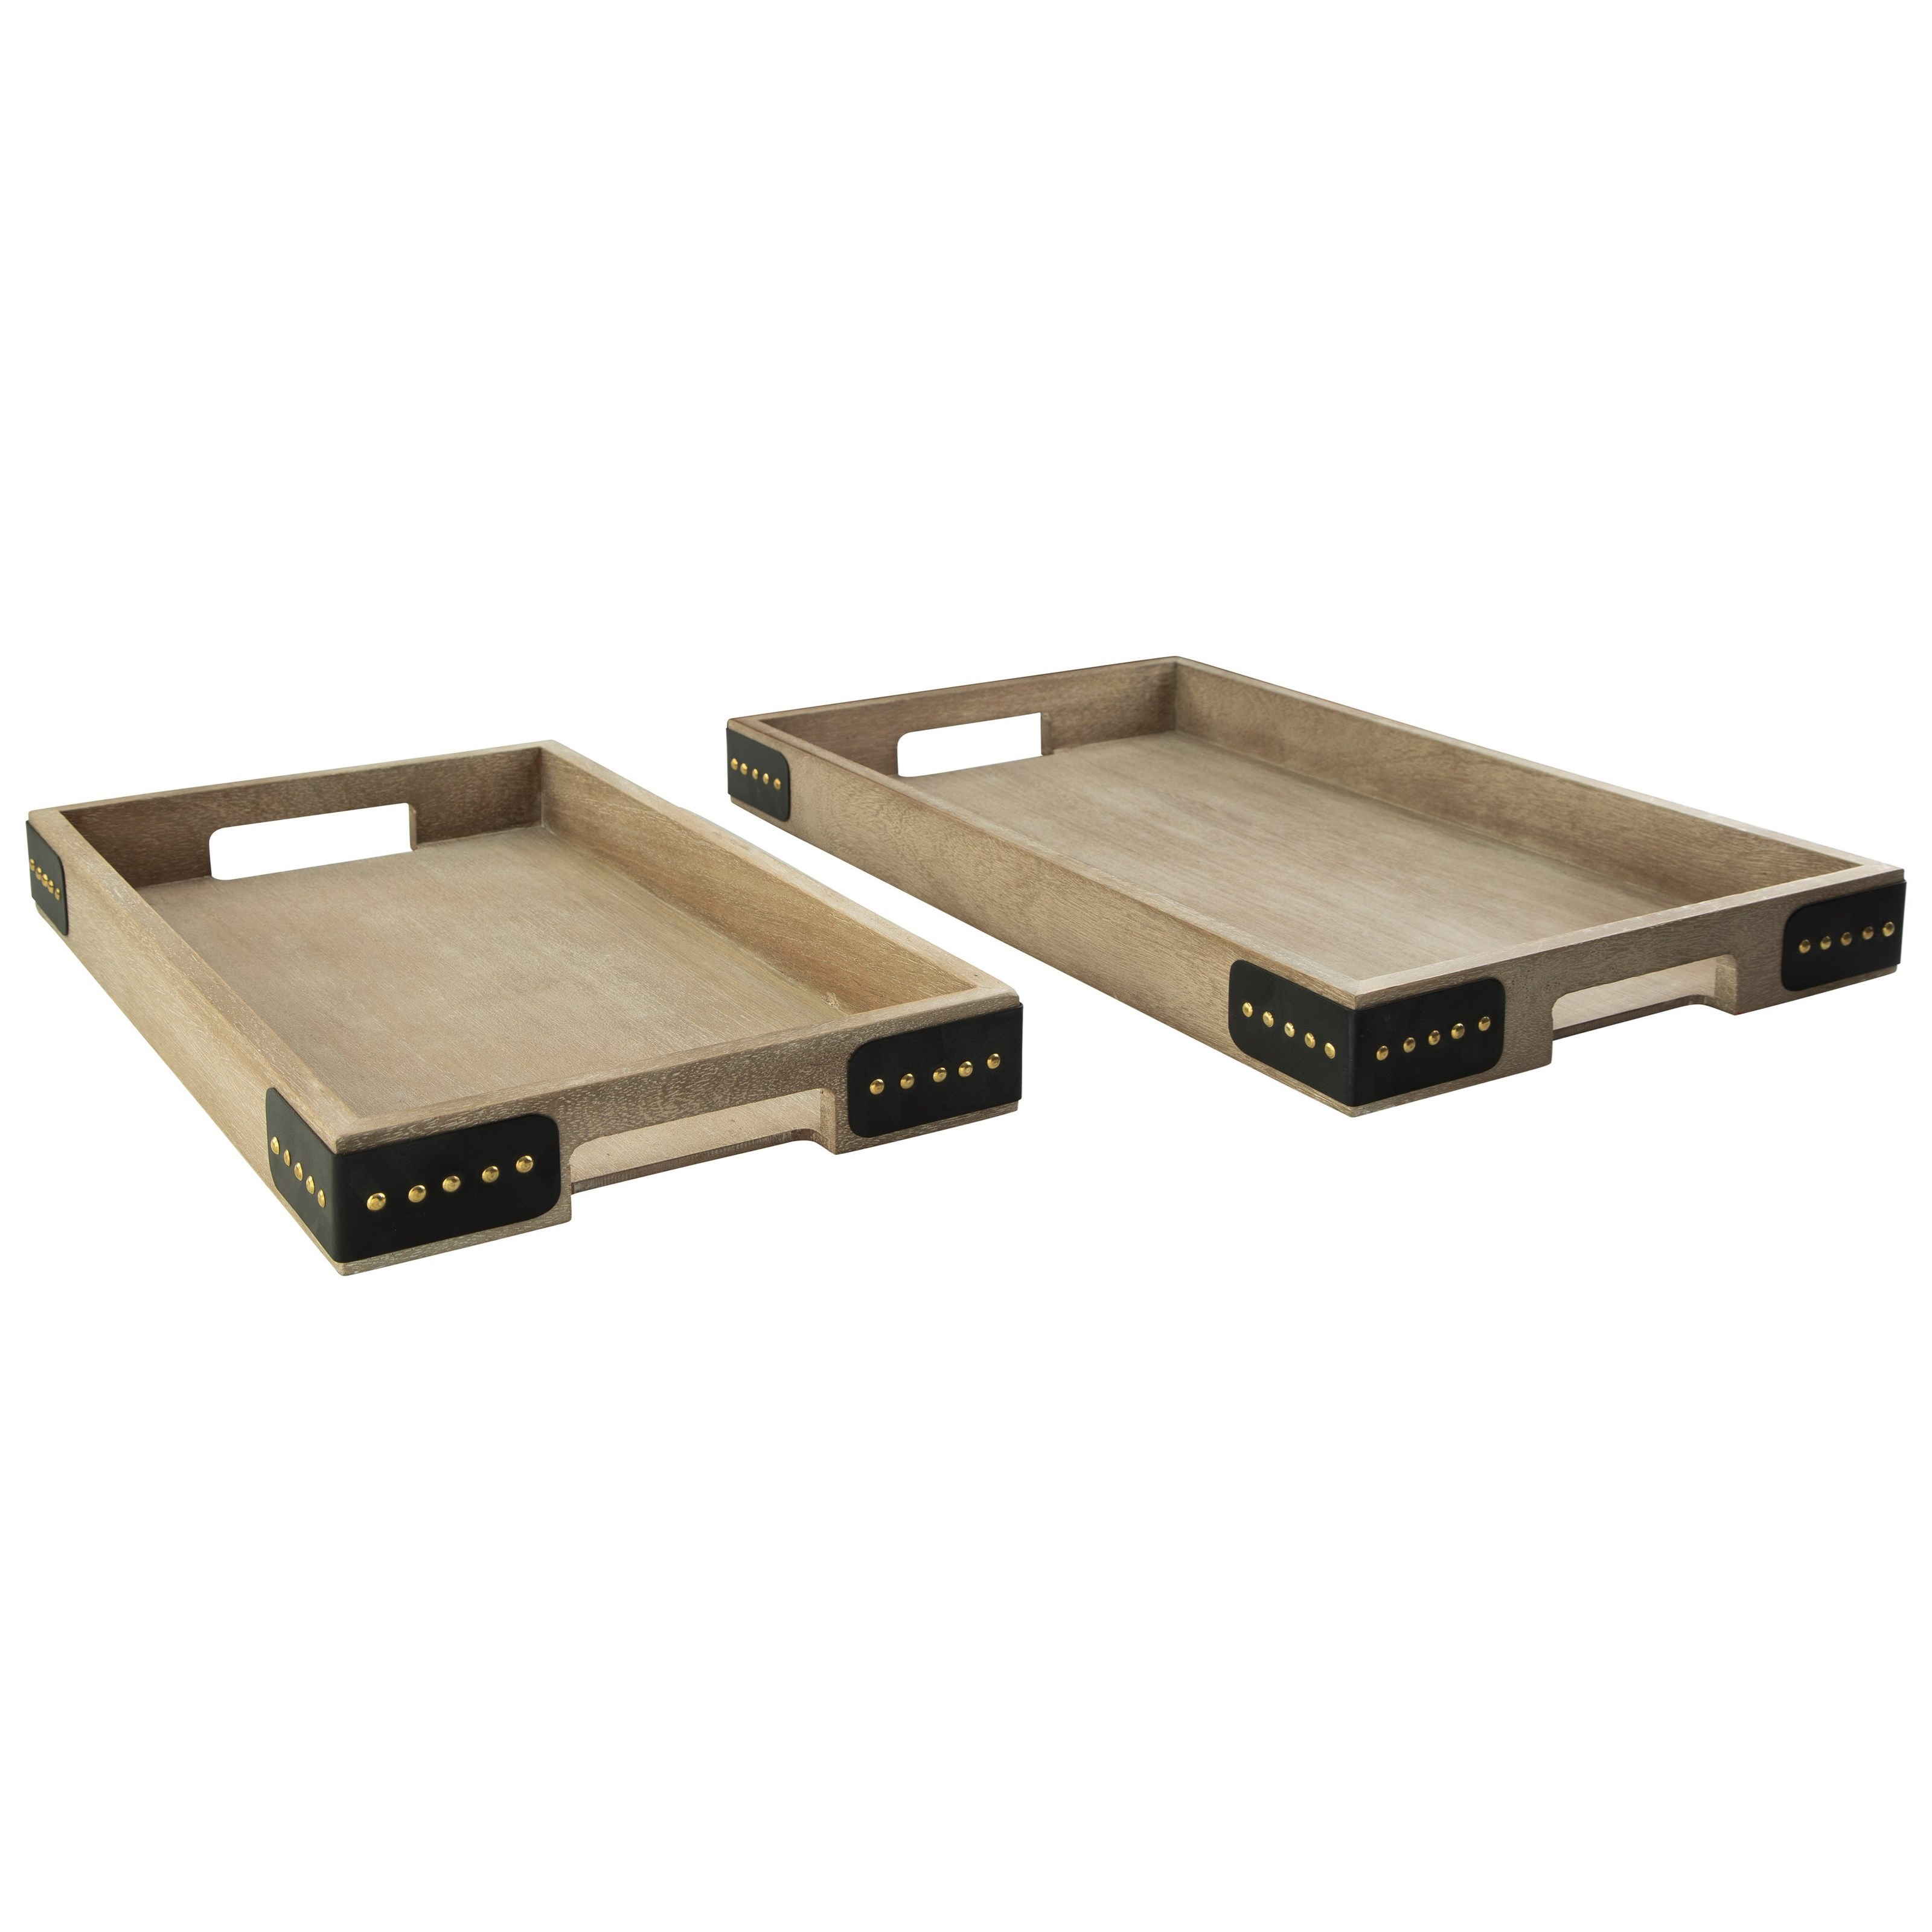 Accents 2-Piece Missa Brown Tray Set by Vendor 3 at Becker Furniture